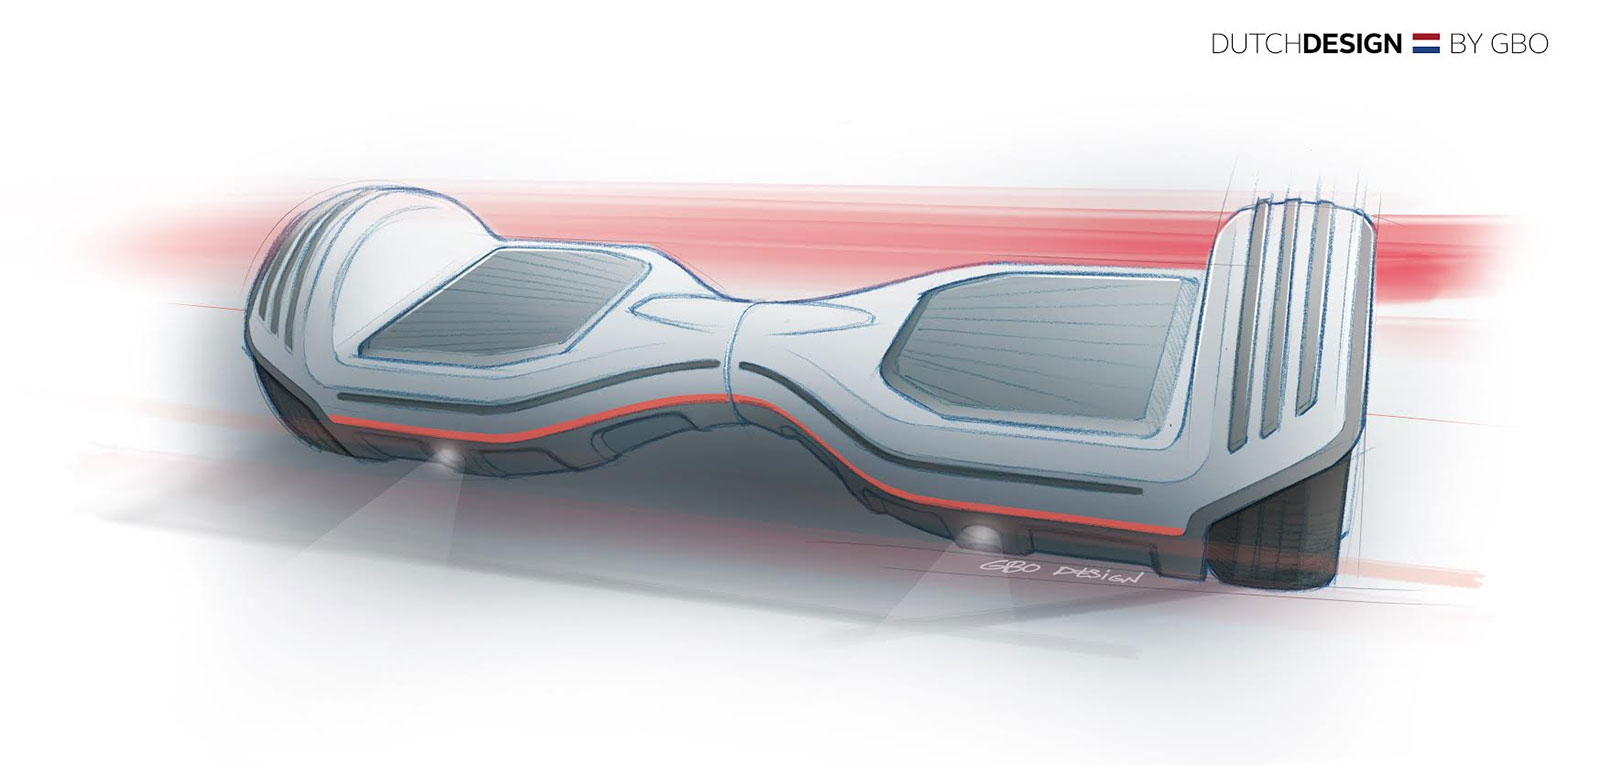 Oxboard hoverboard Dutch Design